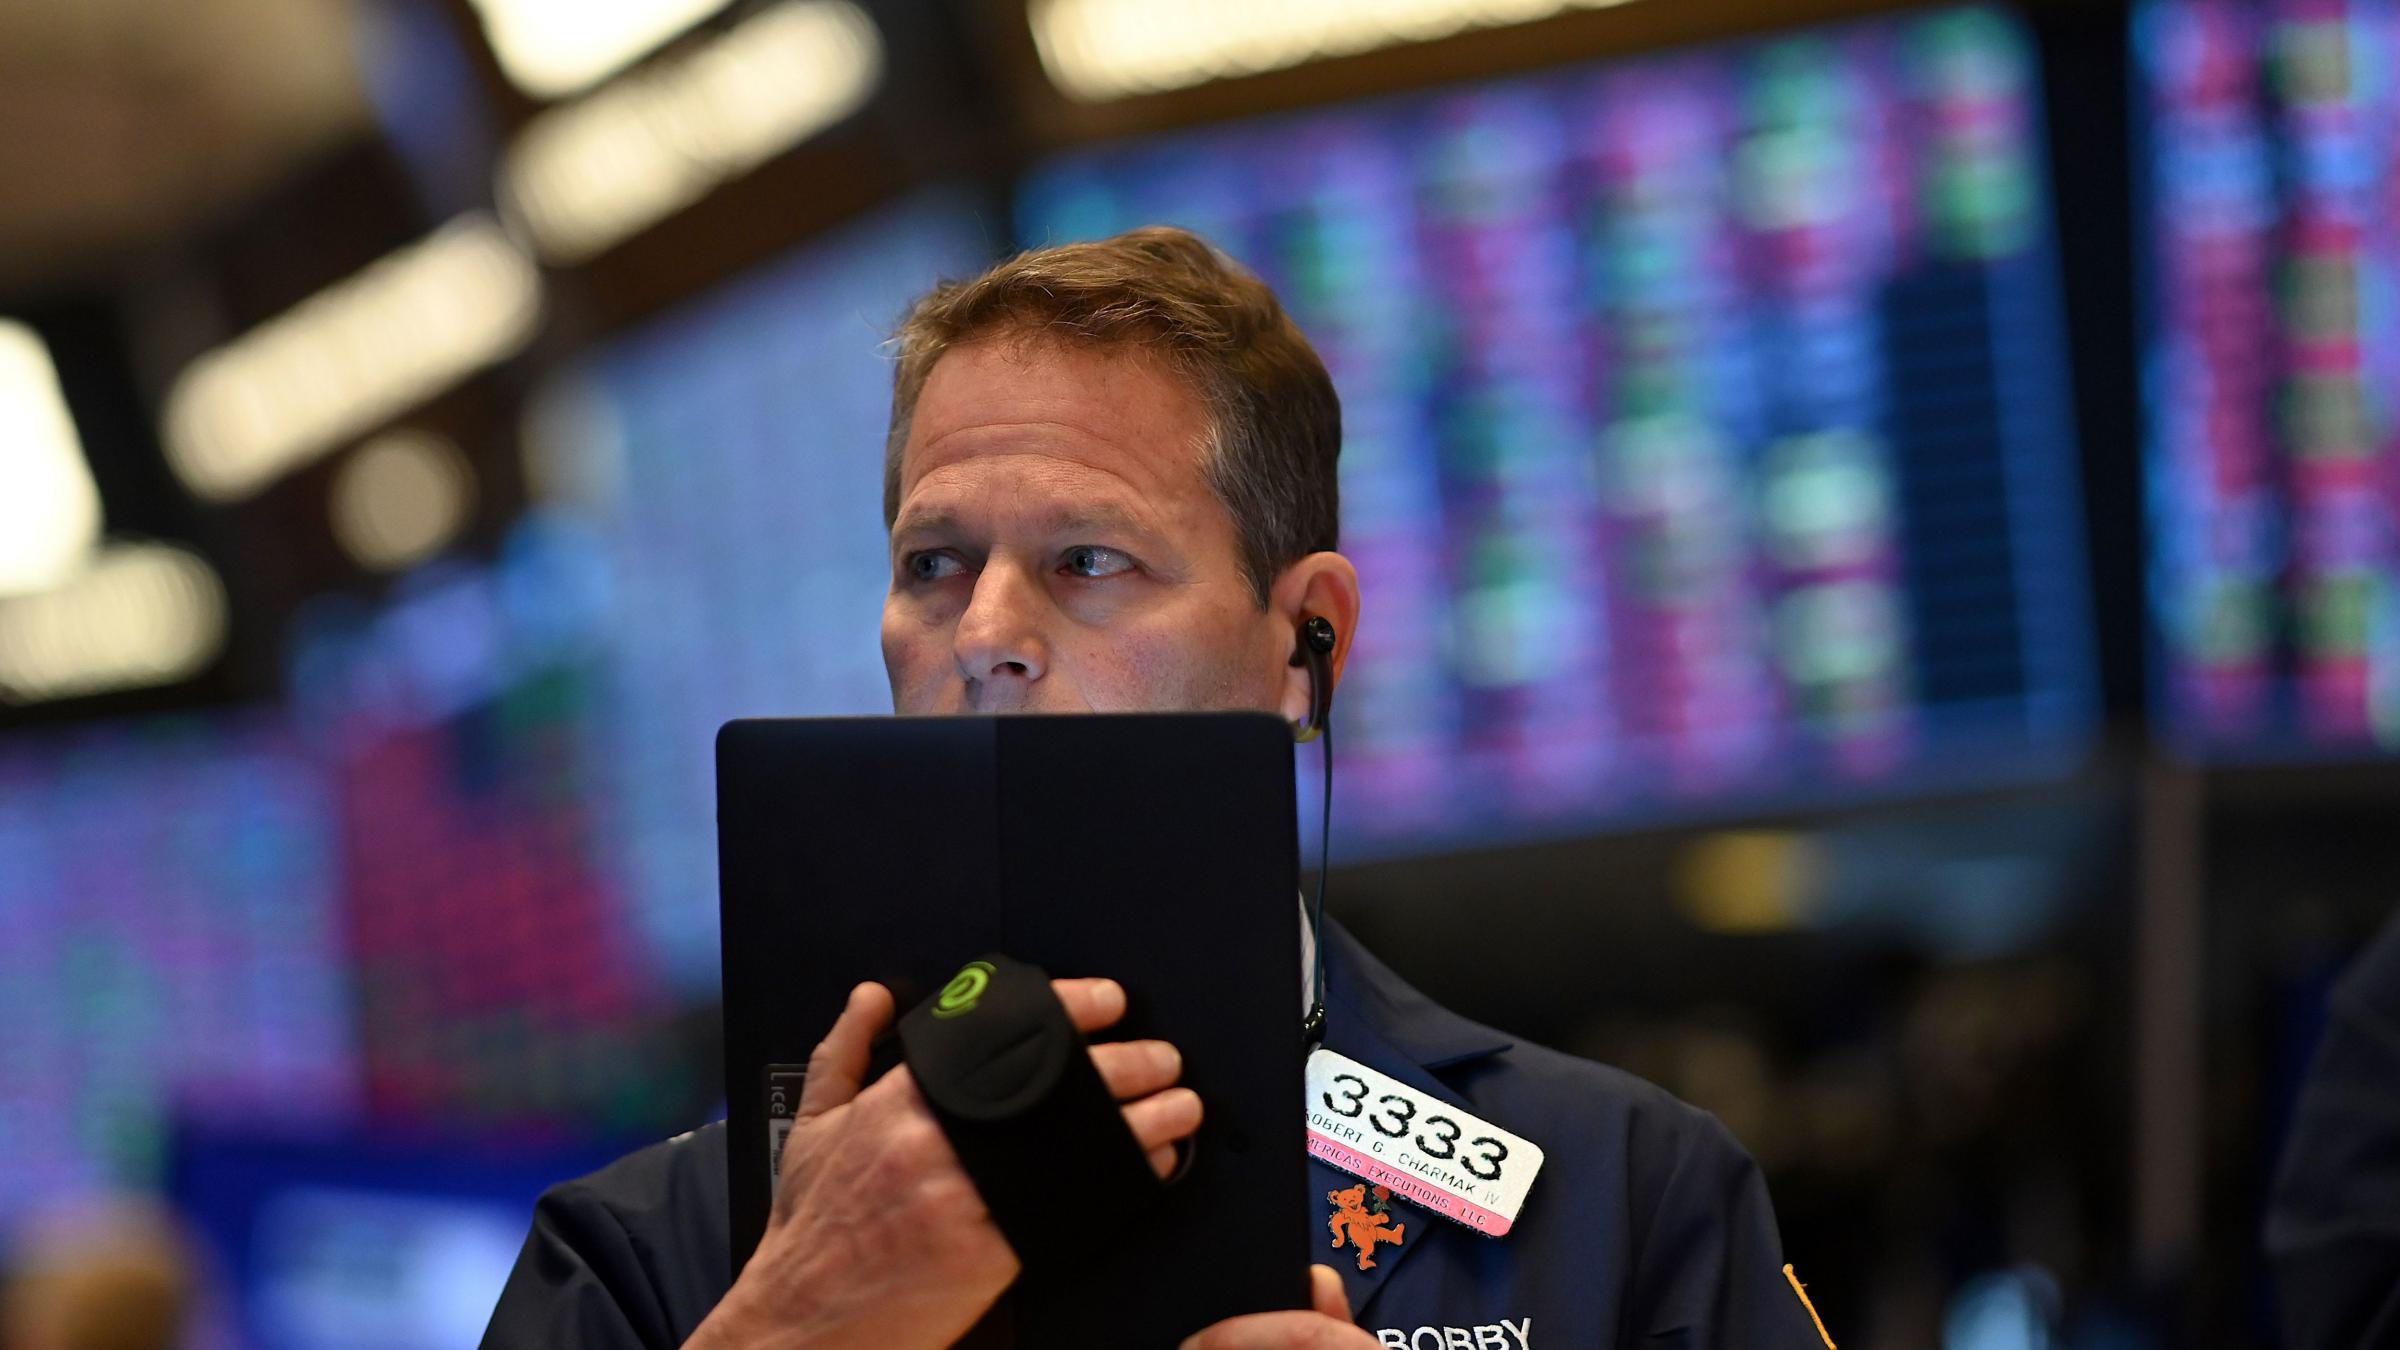 Thursday marks largest one-day drop in Dow Jones history